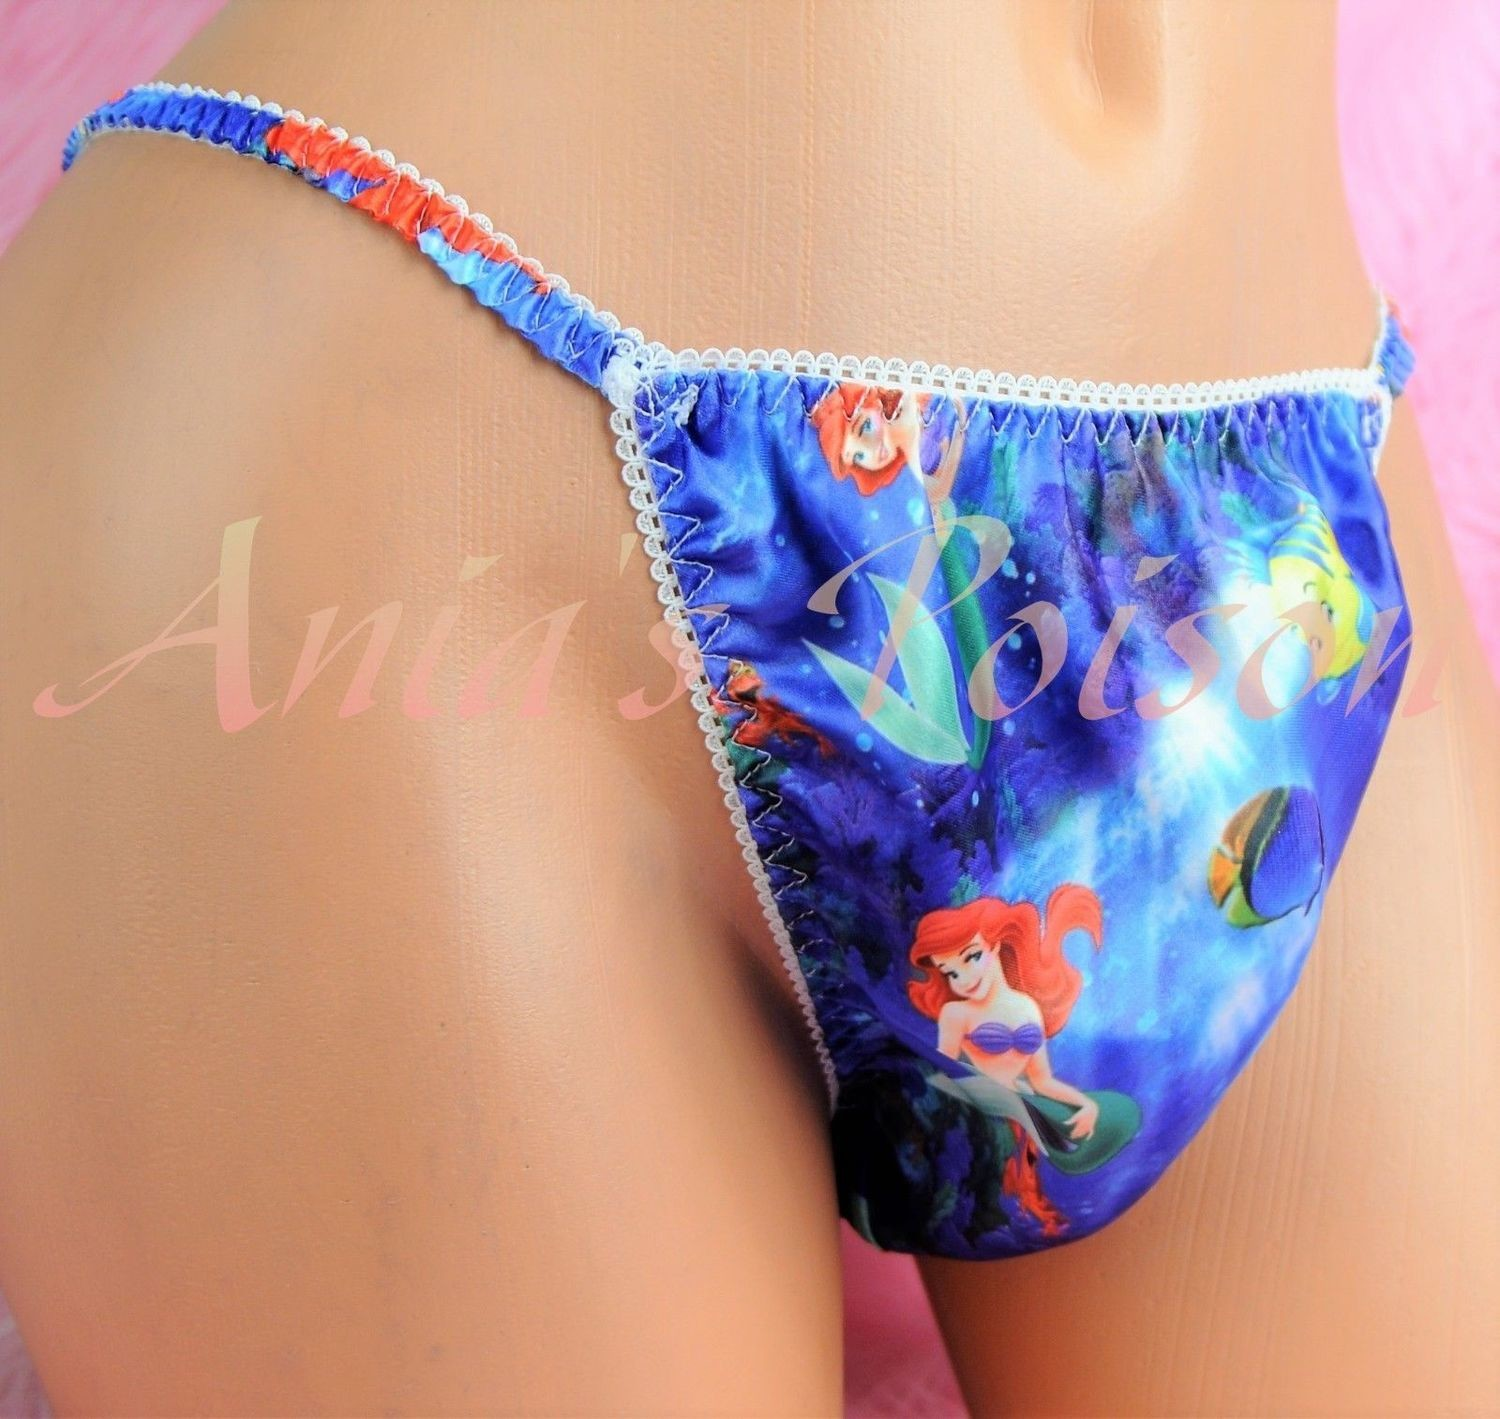 Ania's Poison MANties S - XXL Princess Mermaid Prints Super Rare 100% polyester string bikini sissy mens underwear panties